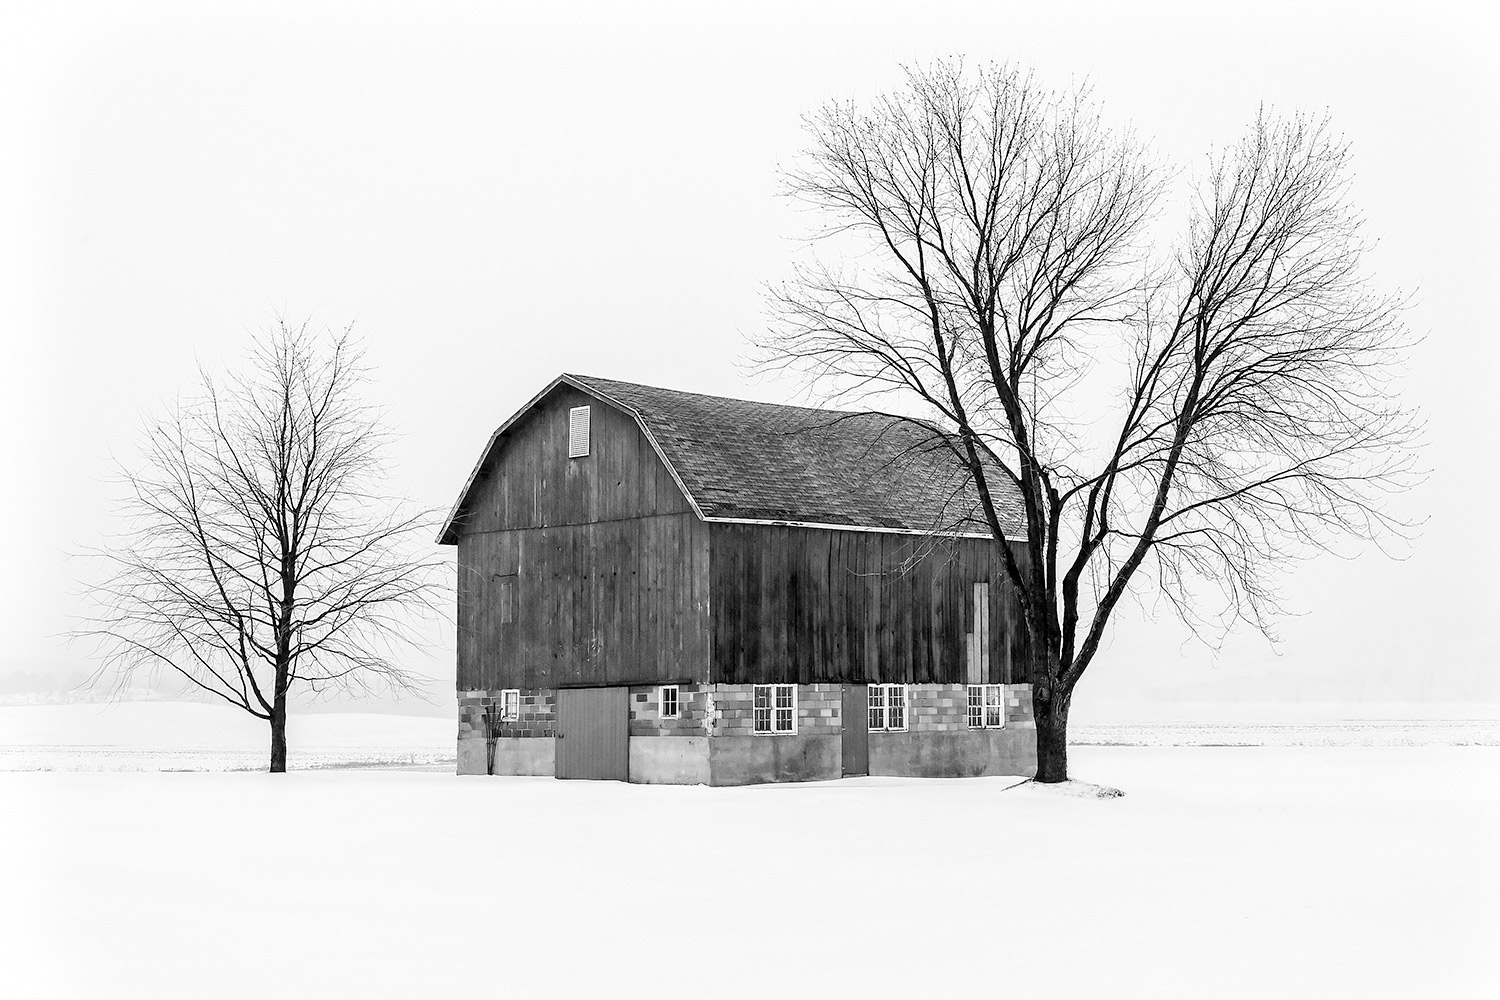 Snowy Little Barn